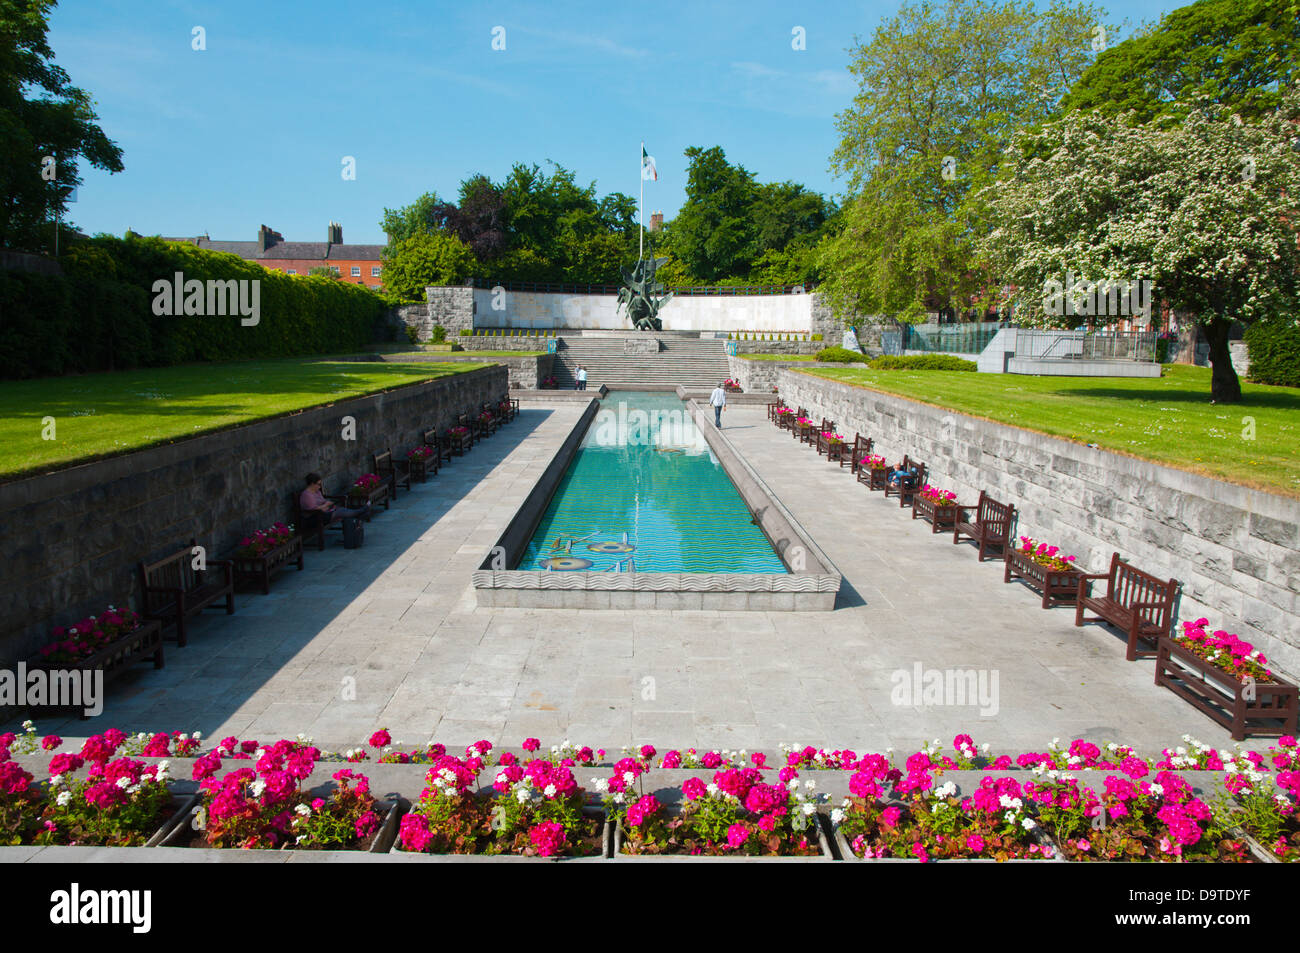 Garden of Remembrance memorial (1966) Parnell Square central Dublin Ireland Europe - Stock Image